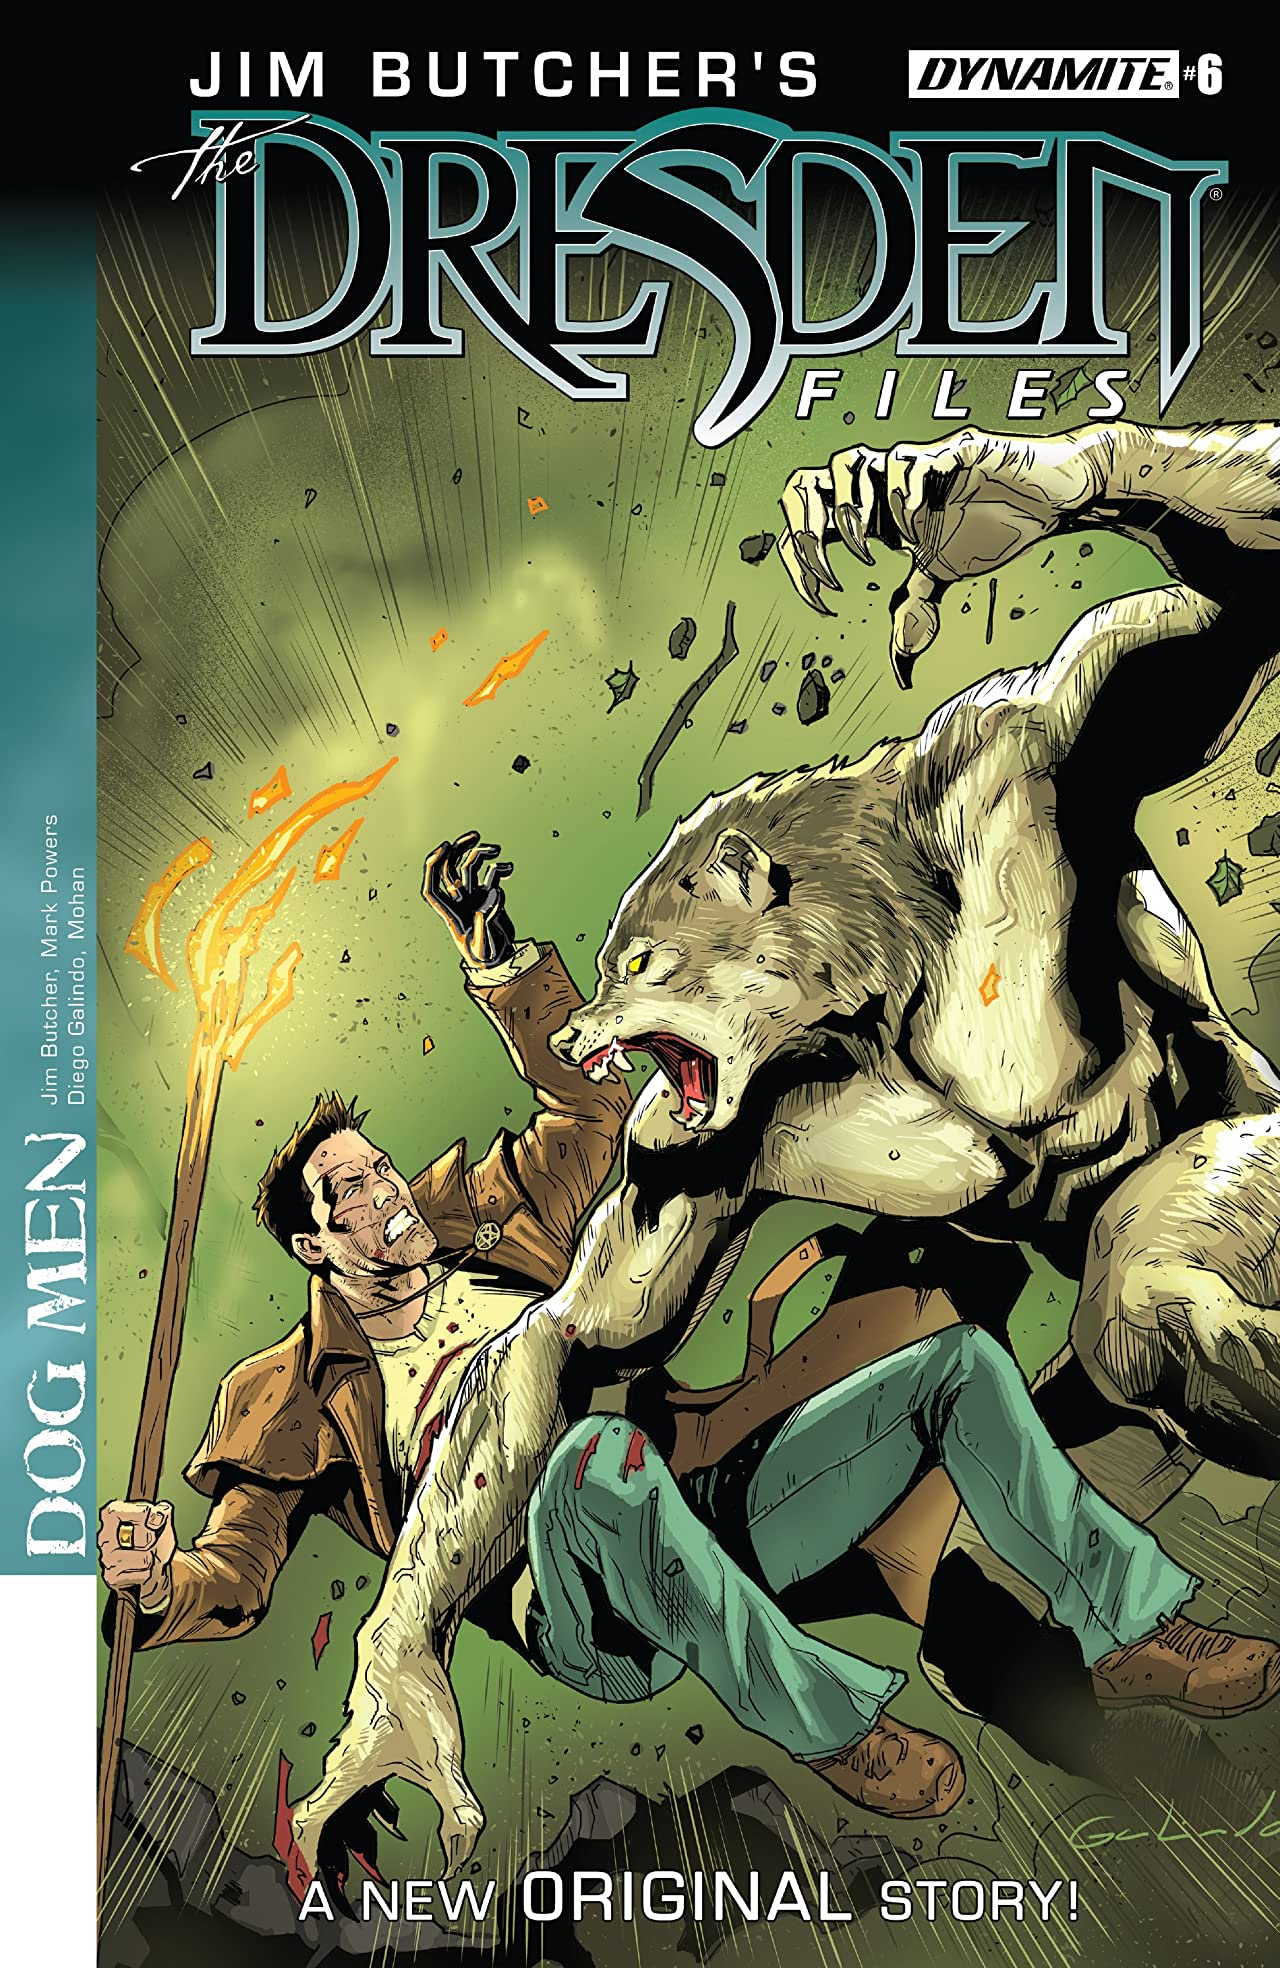 Jim Butcher's The Dresden Files: Dog Men #6